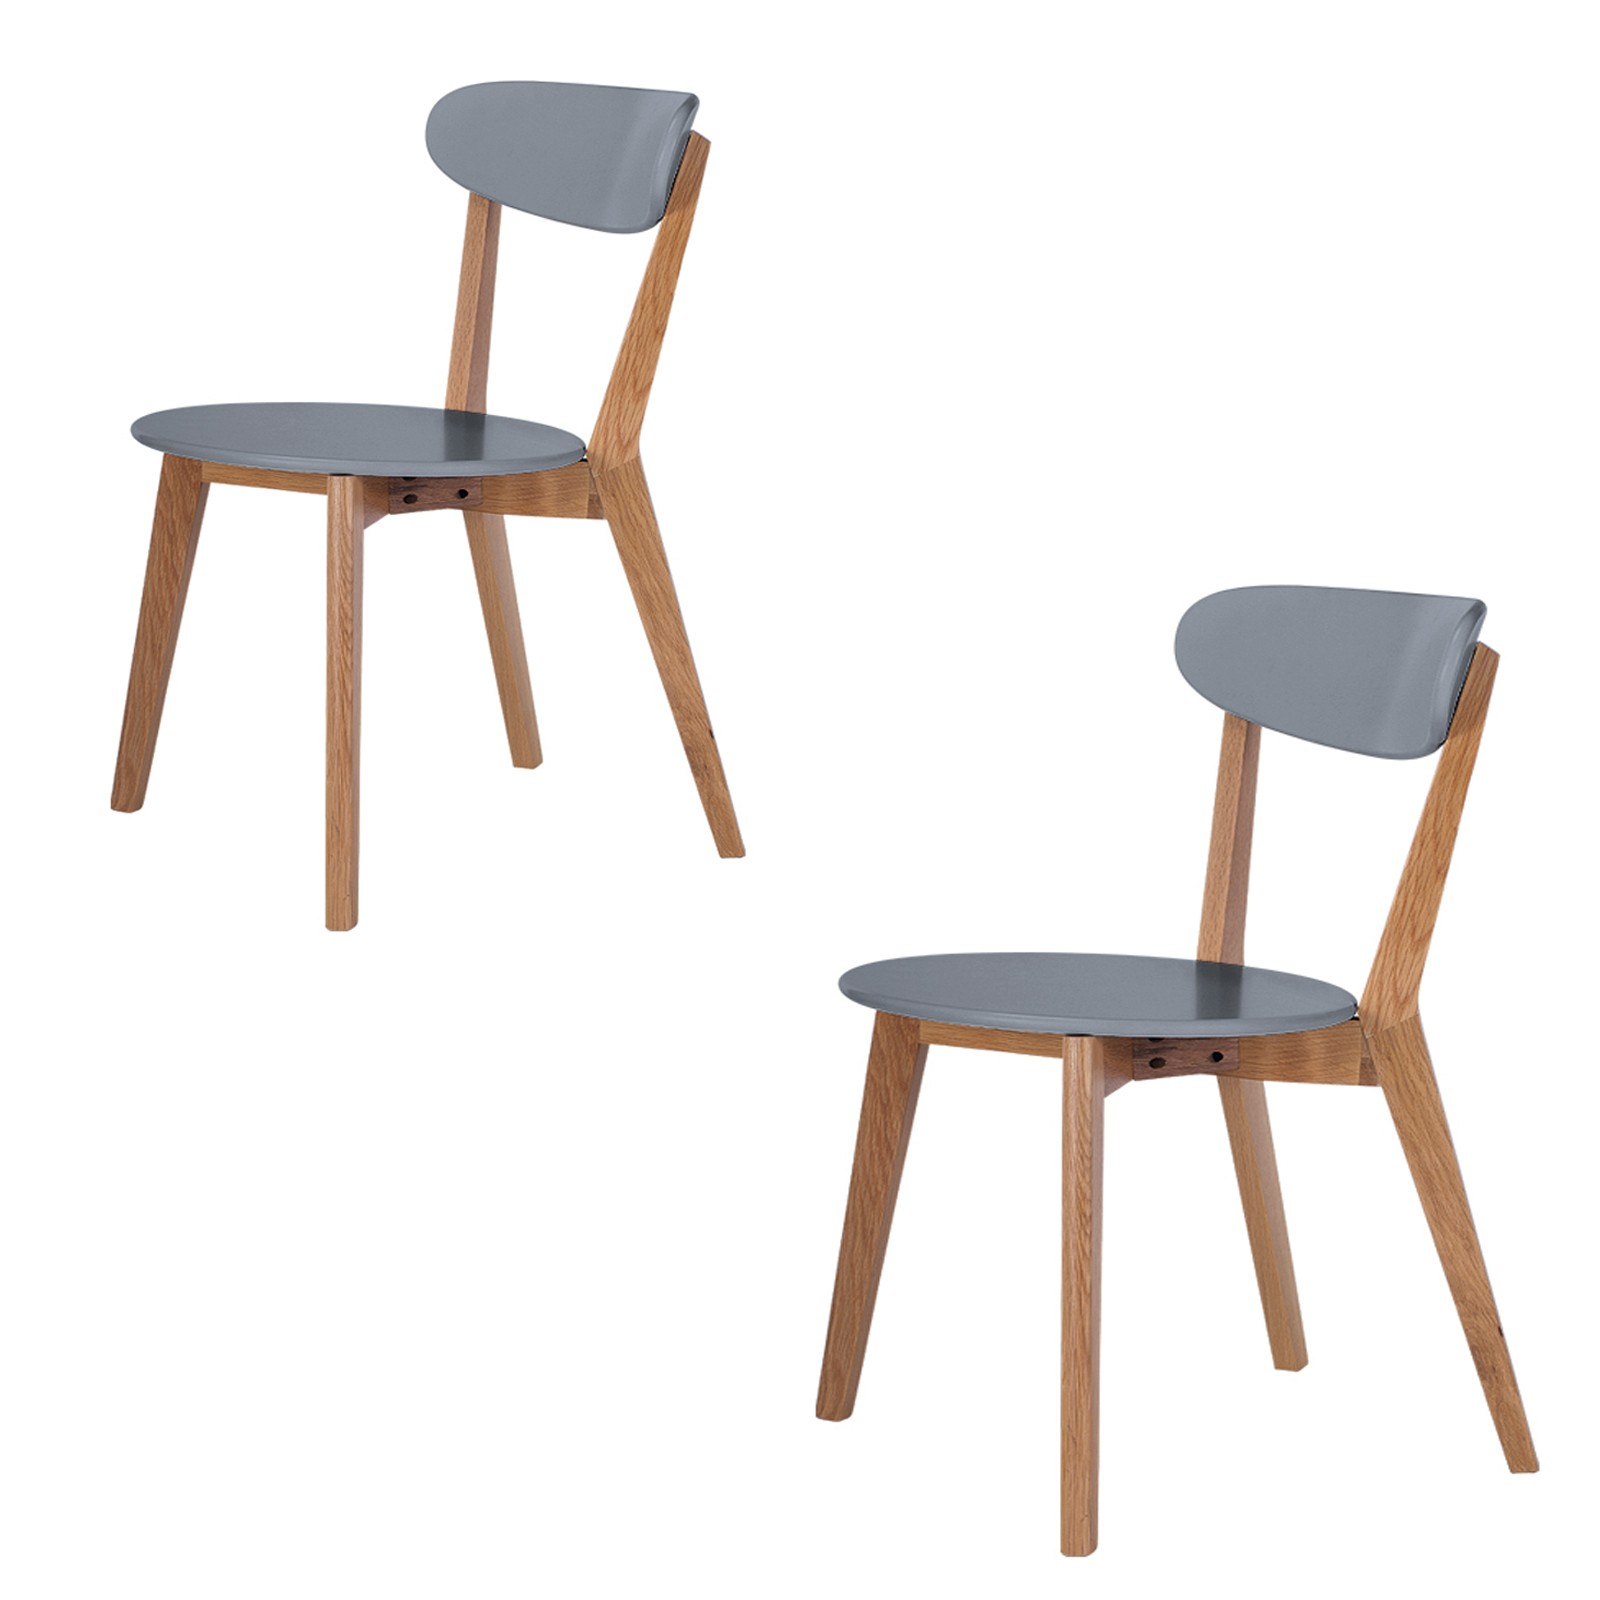 Scandinavian Chair Scandinavian Style Dining Chairs Abreo Home Furniture